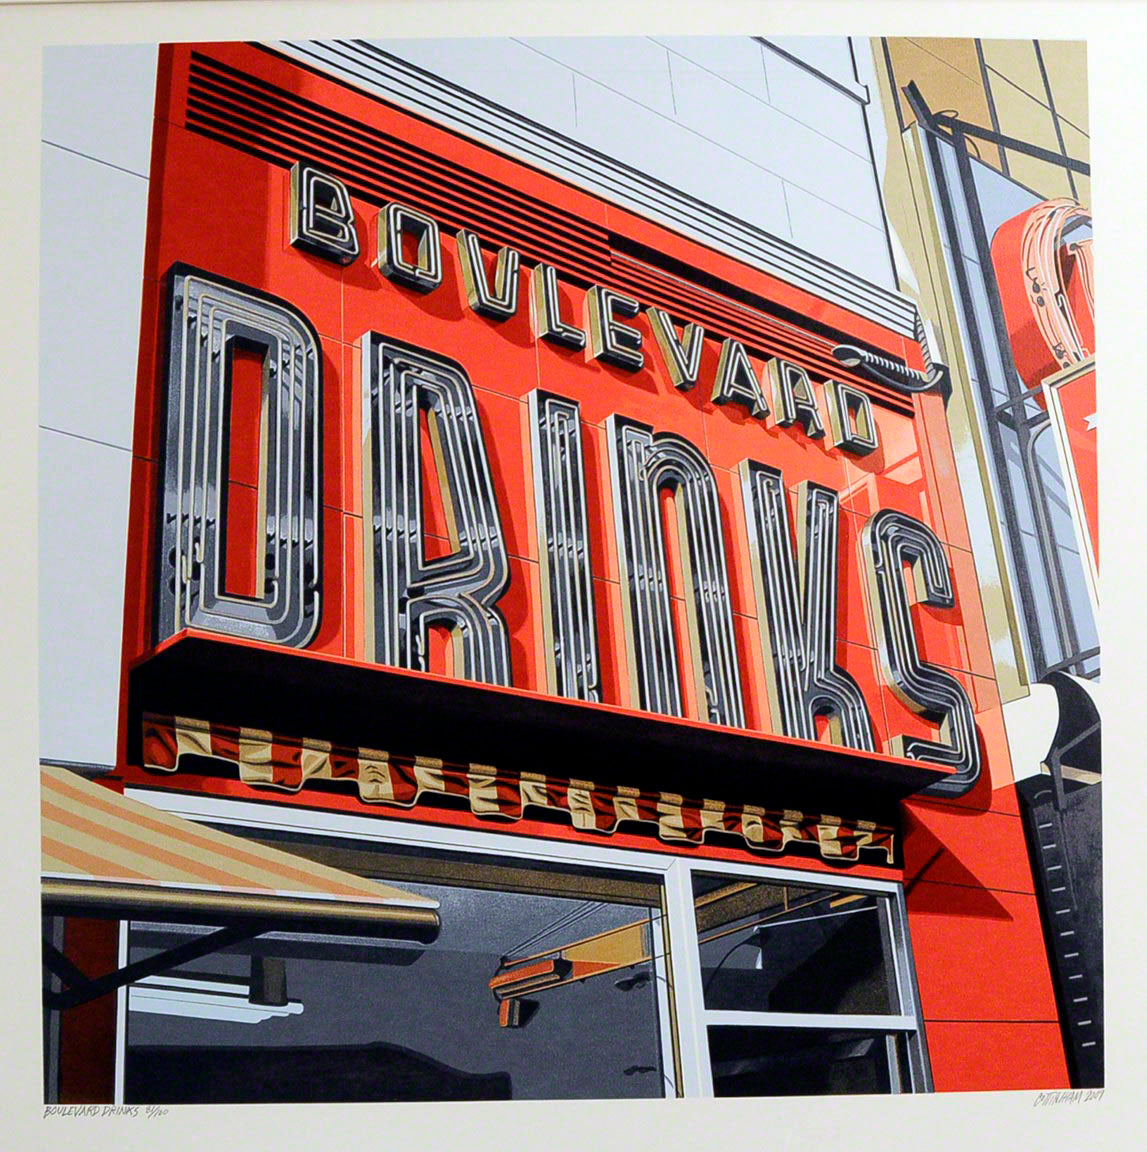 American Signs BOULEVARD DRINKS by Robert Cottingham